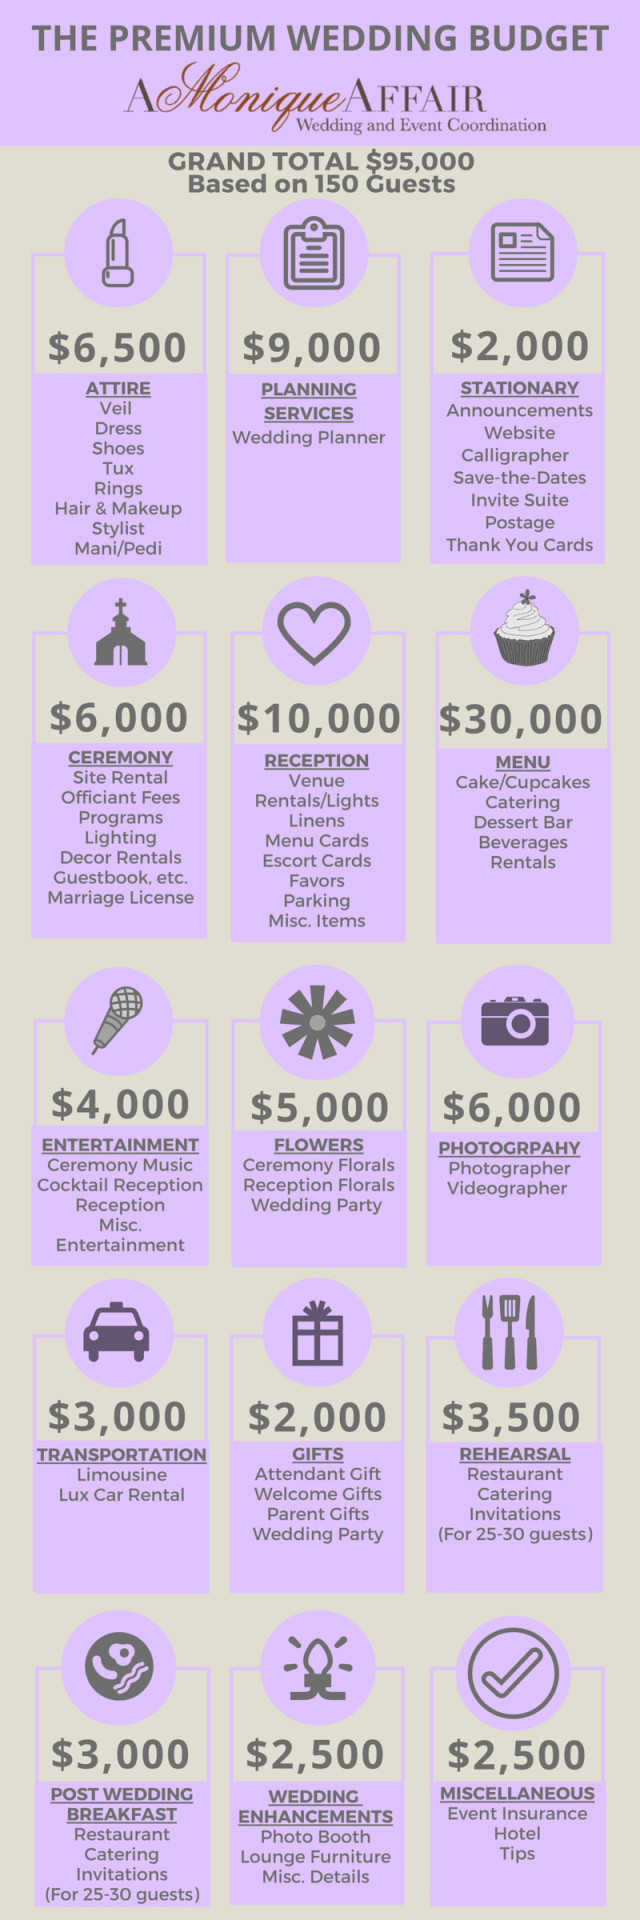 The premium wedding budget investment wedding budget junglespirit Choice Image